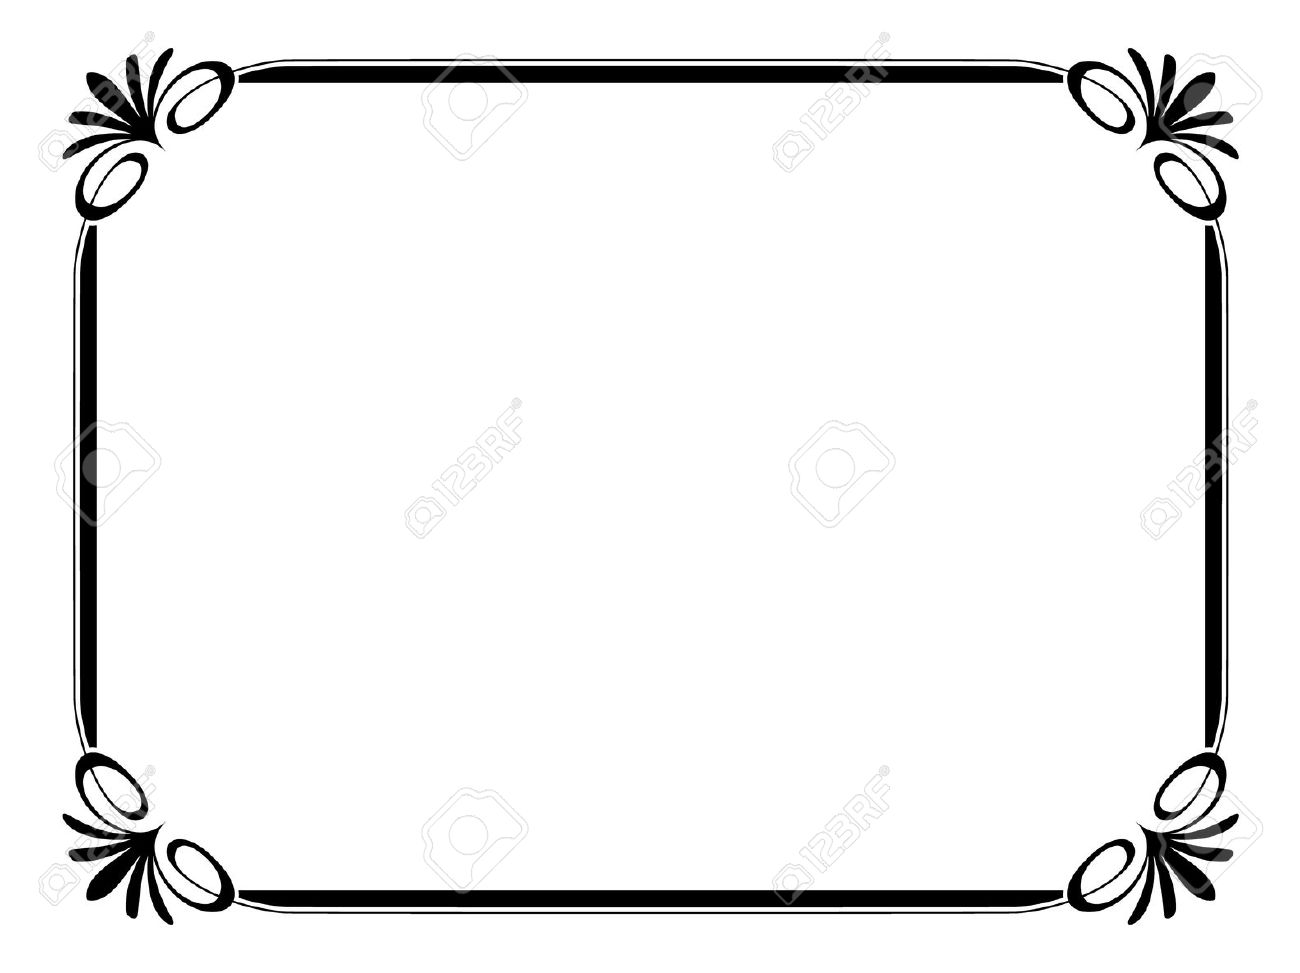 Certificate Borders And Frames Clipart